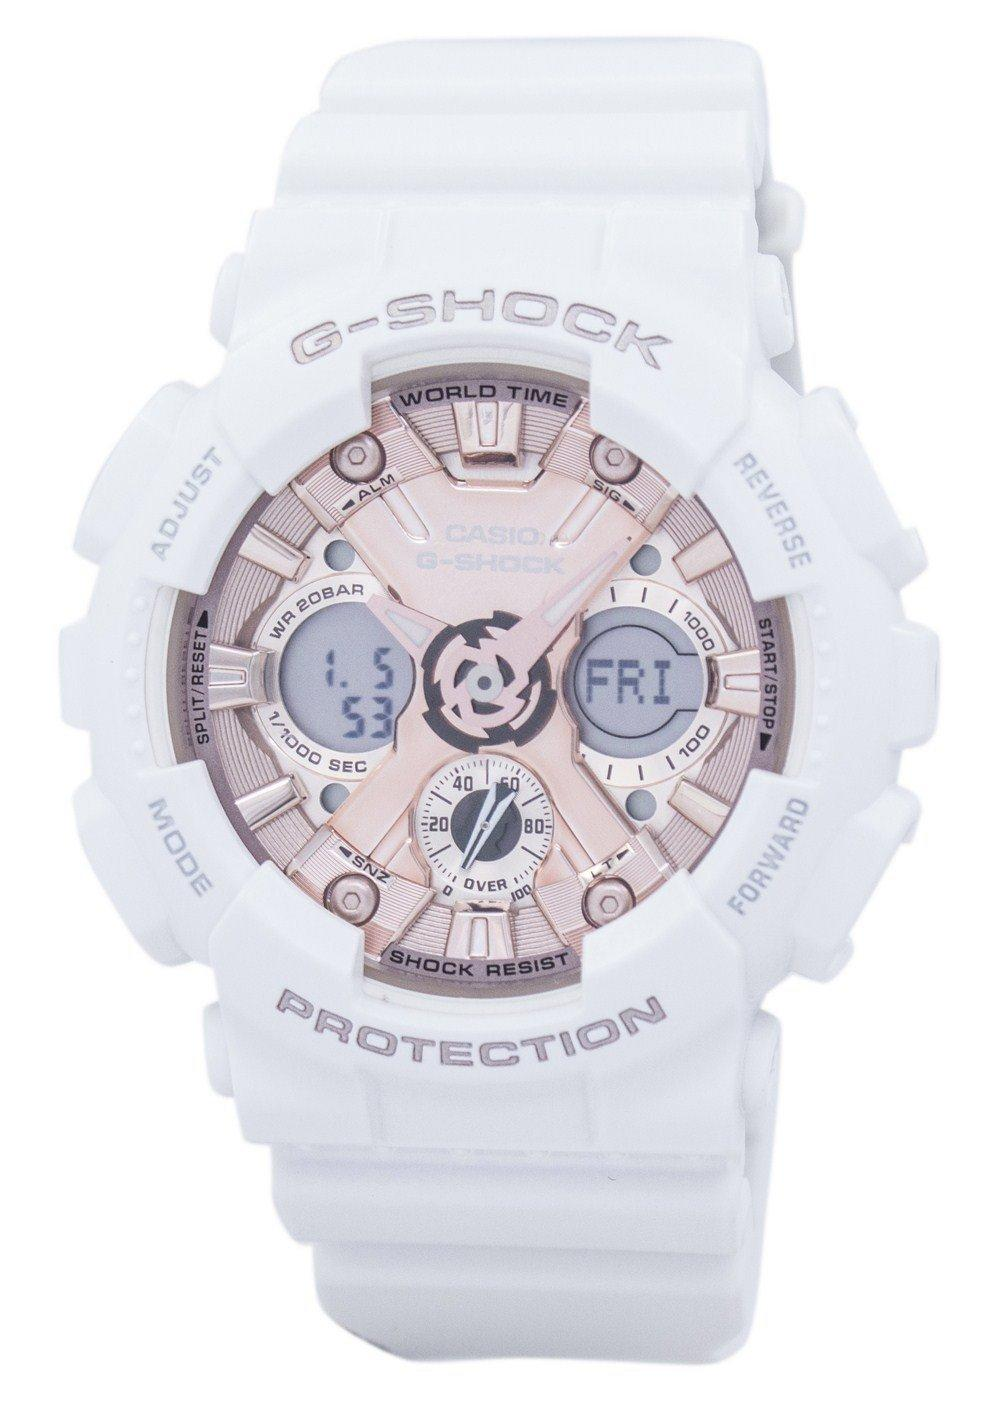 Casio G-Shock Shock Resistant World Time Analog Digital GMA-S120MF-7A2 GMAS120MF-7A2 Women's Watch